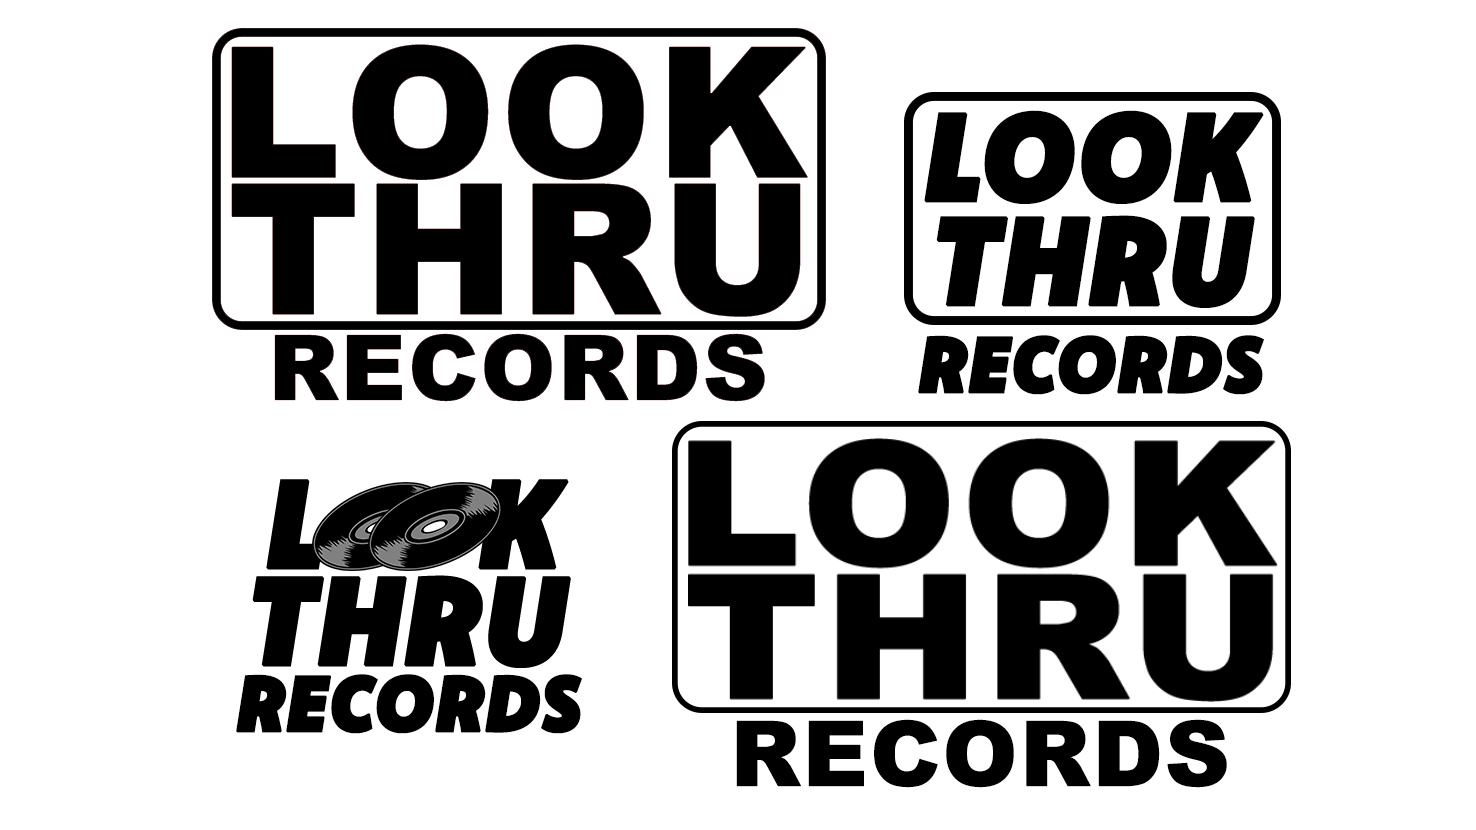 LOOK THRU RECORDS CHOICES